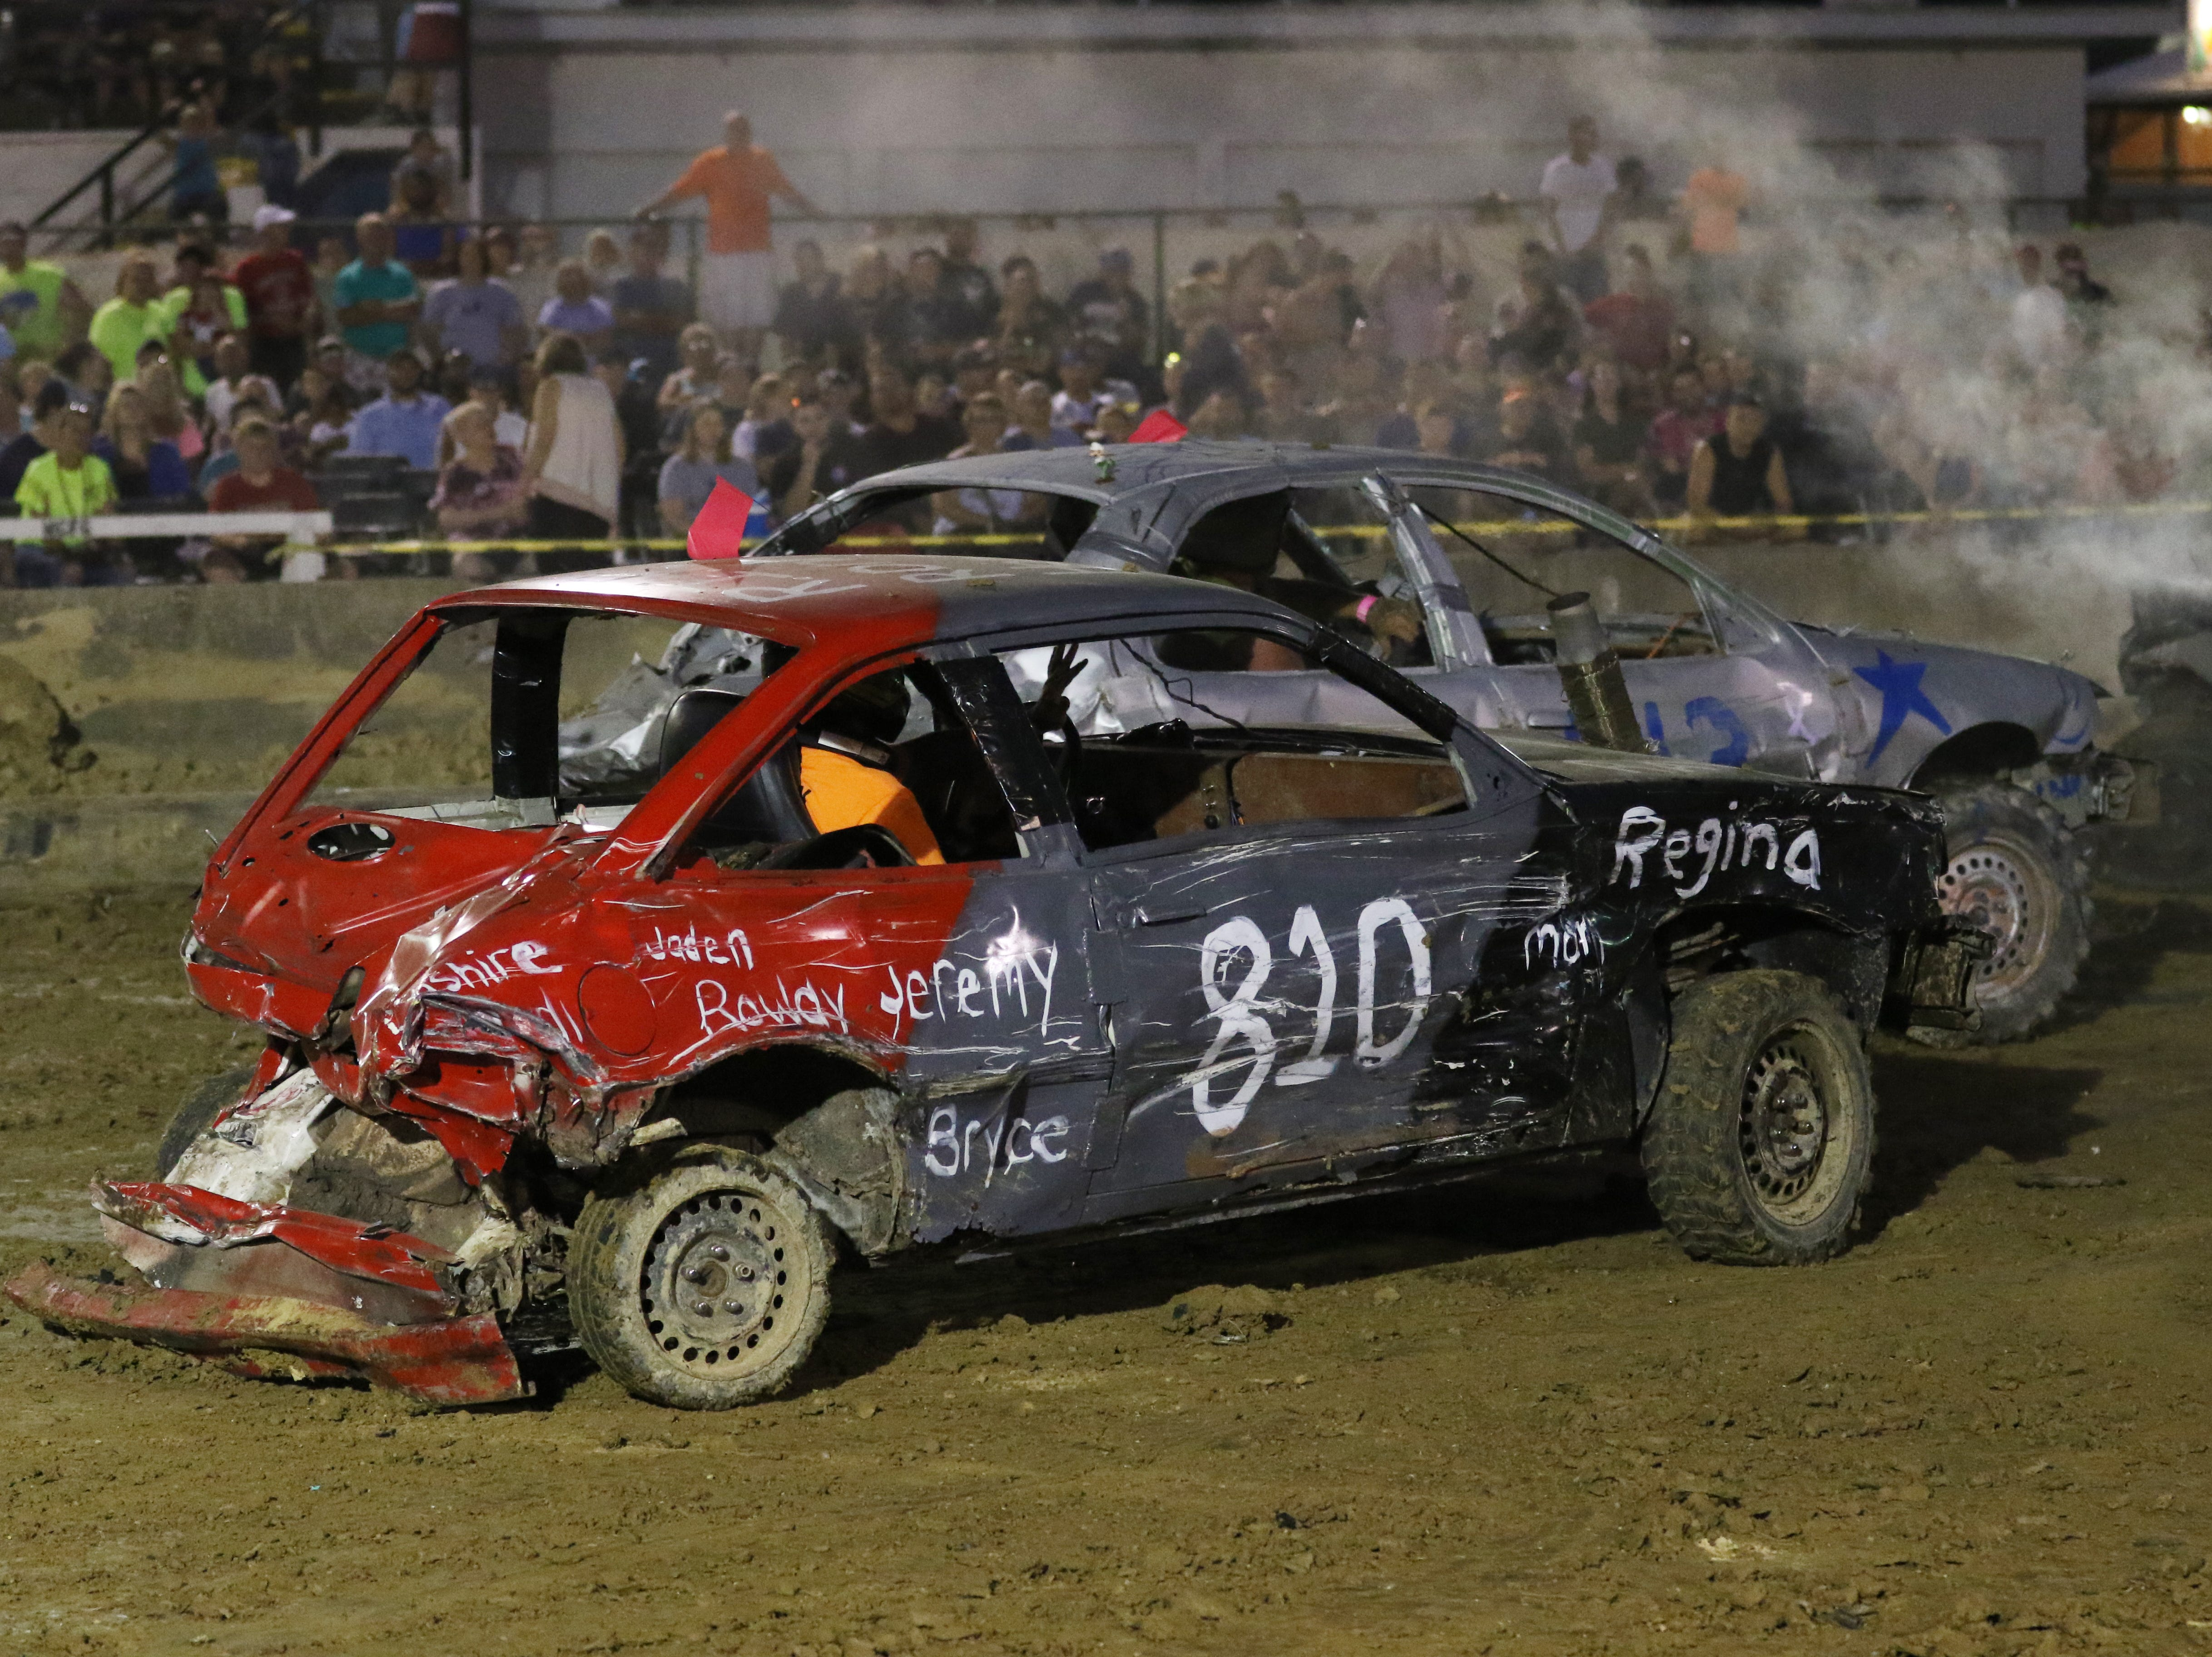 The sagging rear of Robert Anderson's 88 Chevy number 810 car doesn't stop him from taking aim at competitors during the Sarge and Sons Demolition Derby at the Muskingum County Fair on Tuesday.